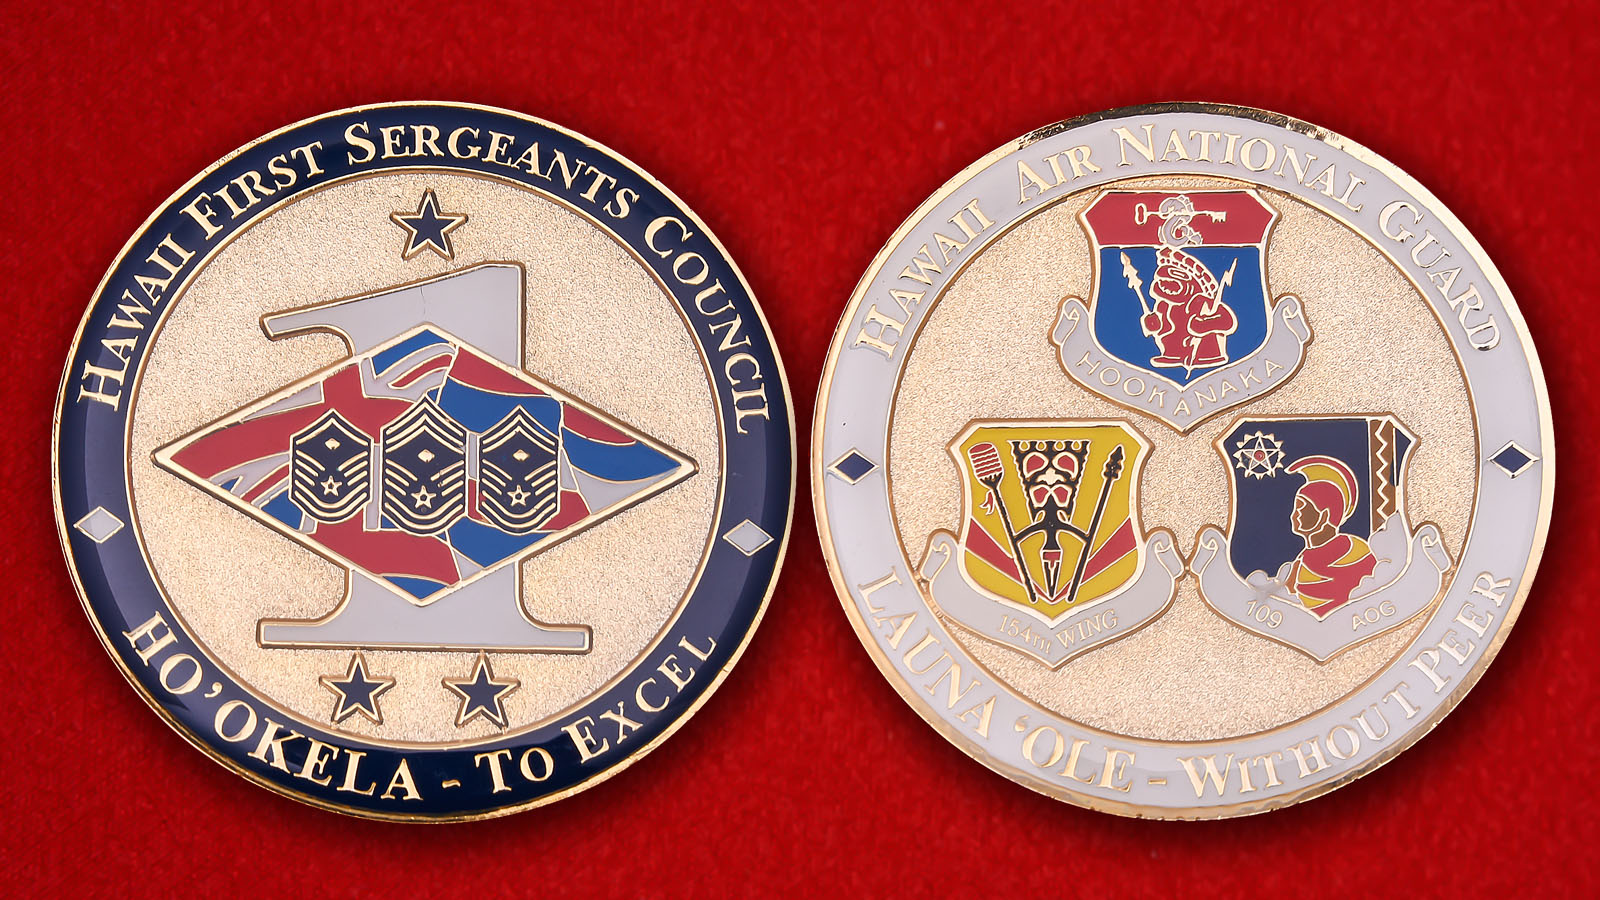 Hawaii Air National Guard First Sergeants Council Challenge Coin